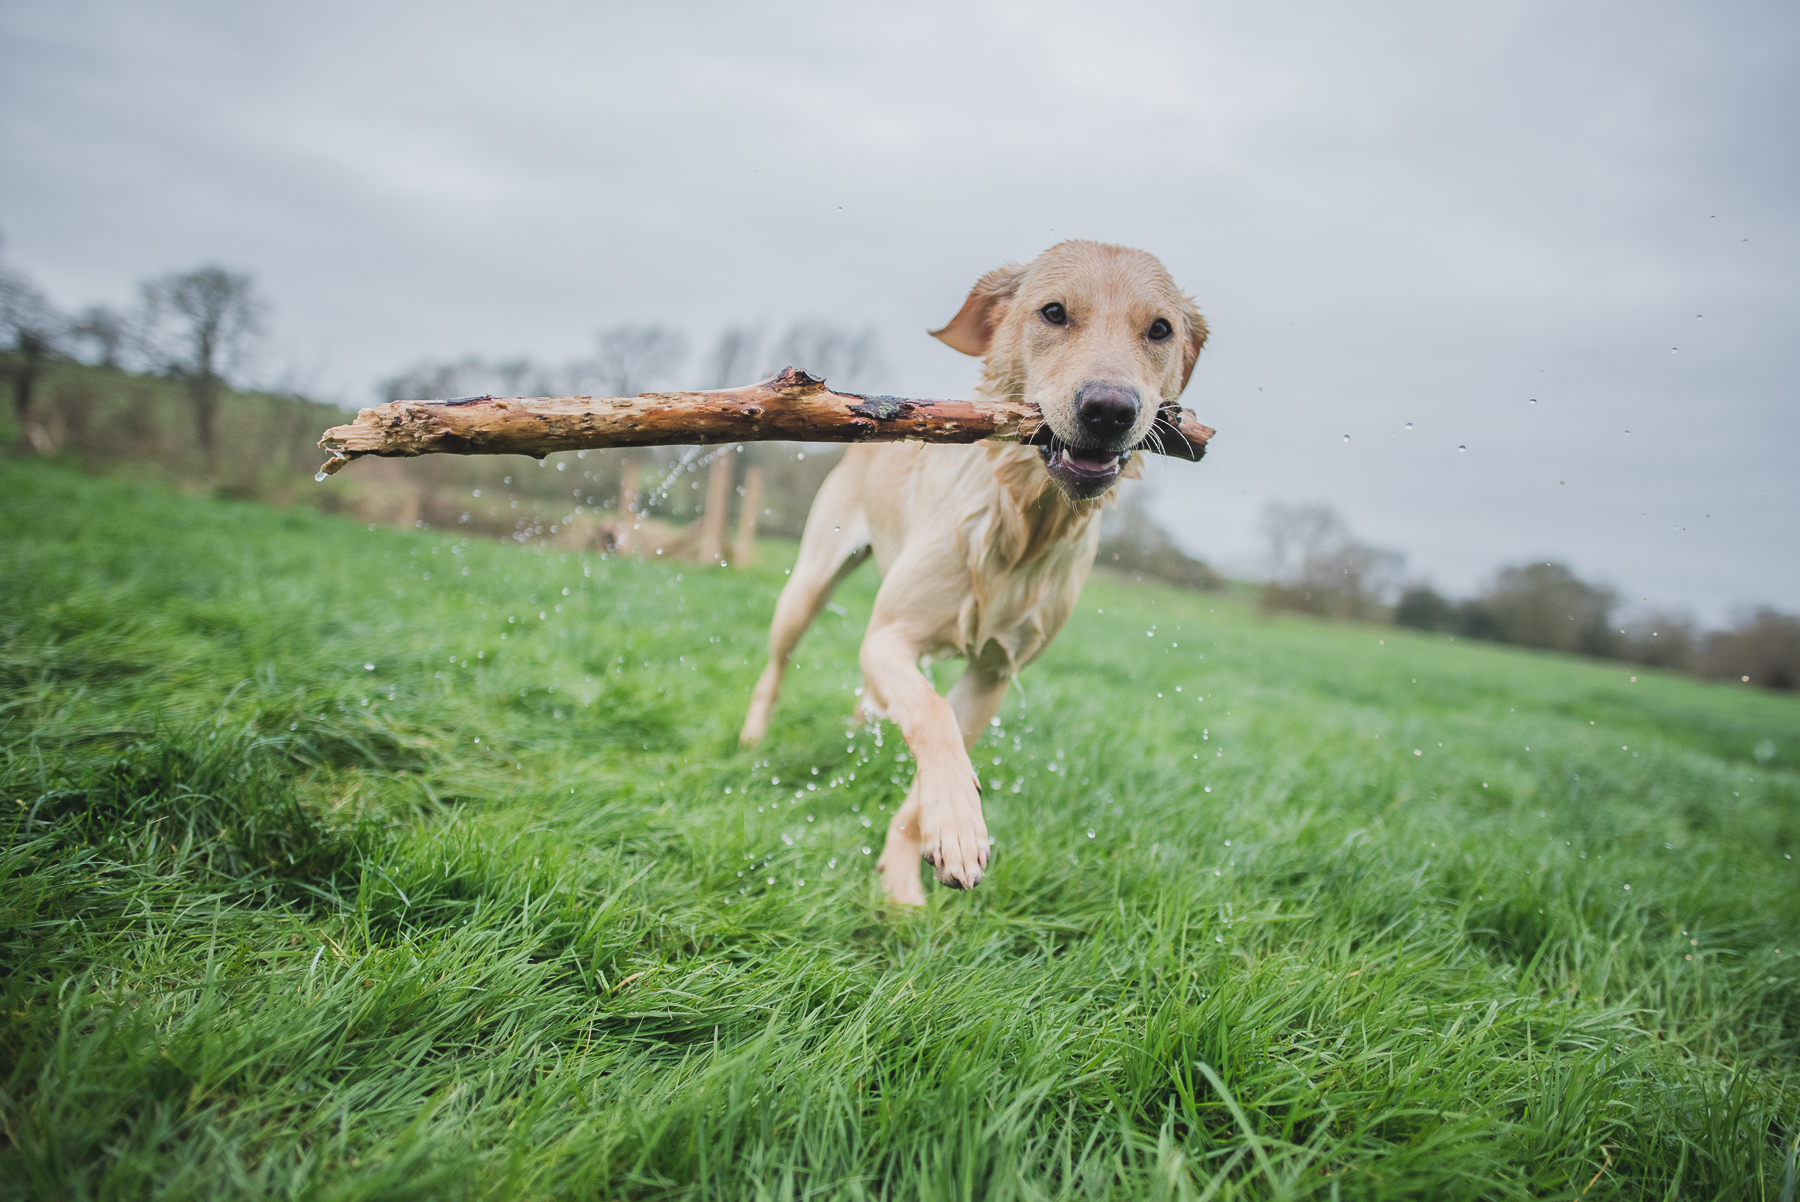 Wet golden labrador holding a stick